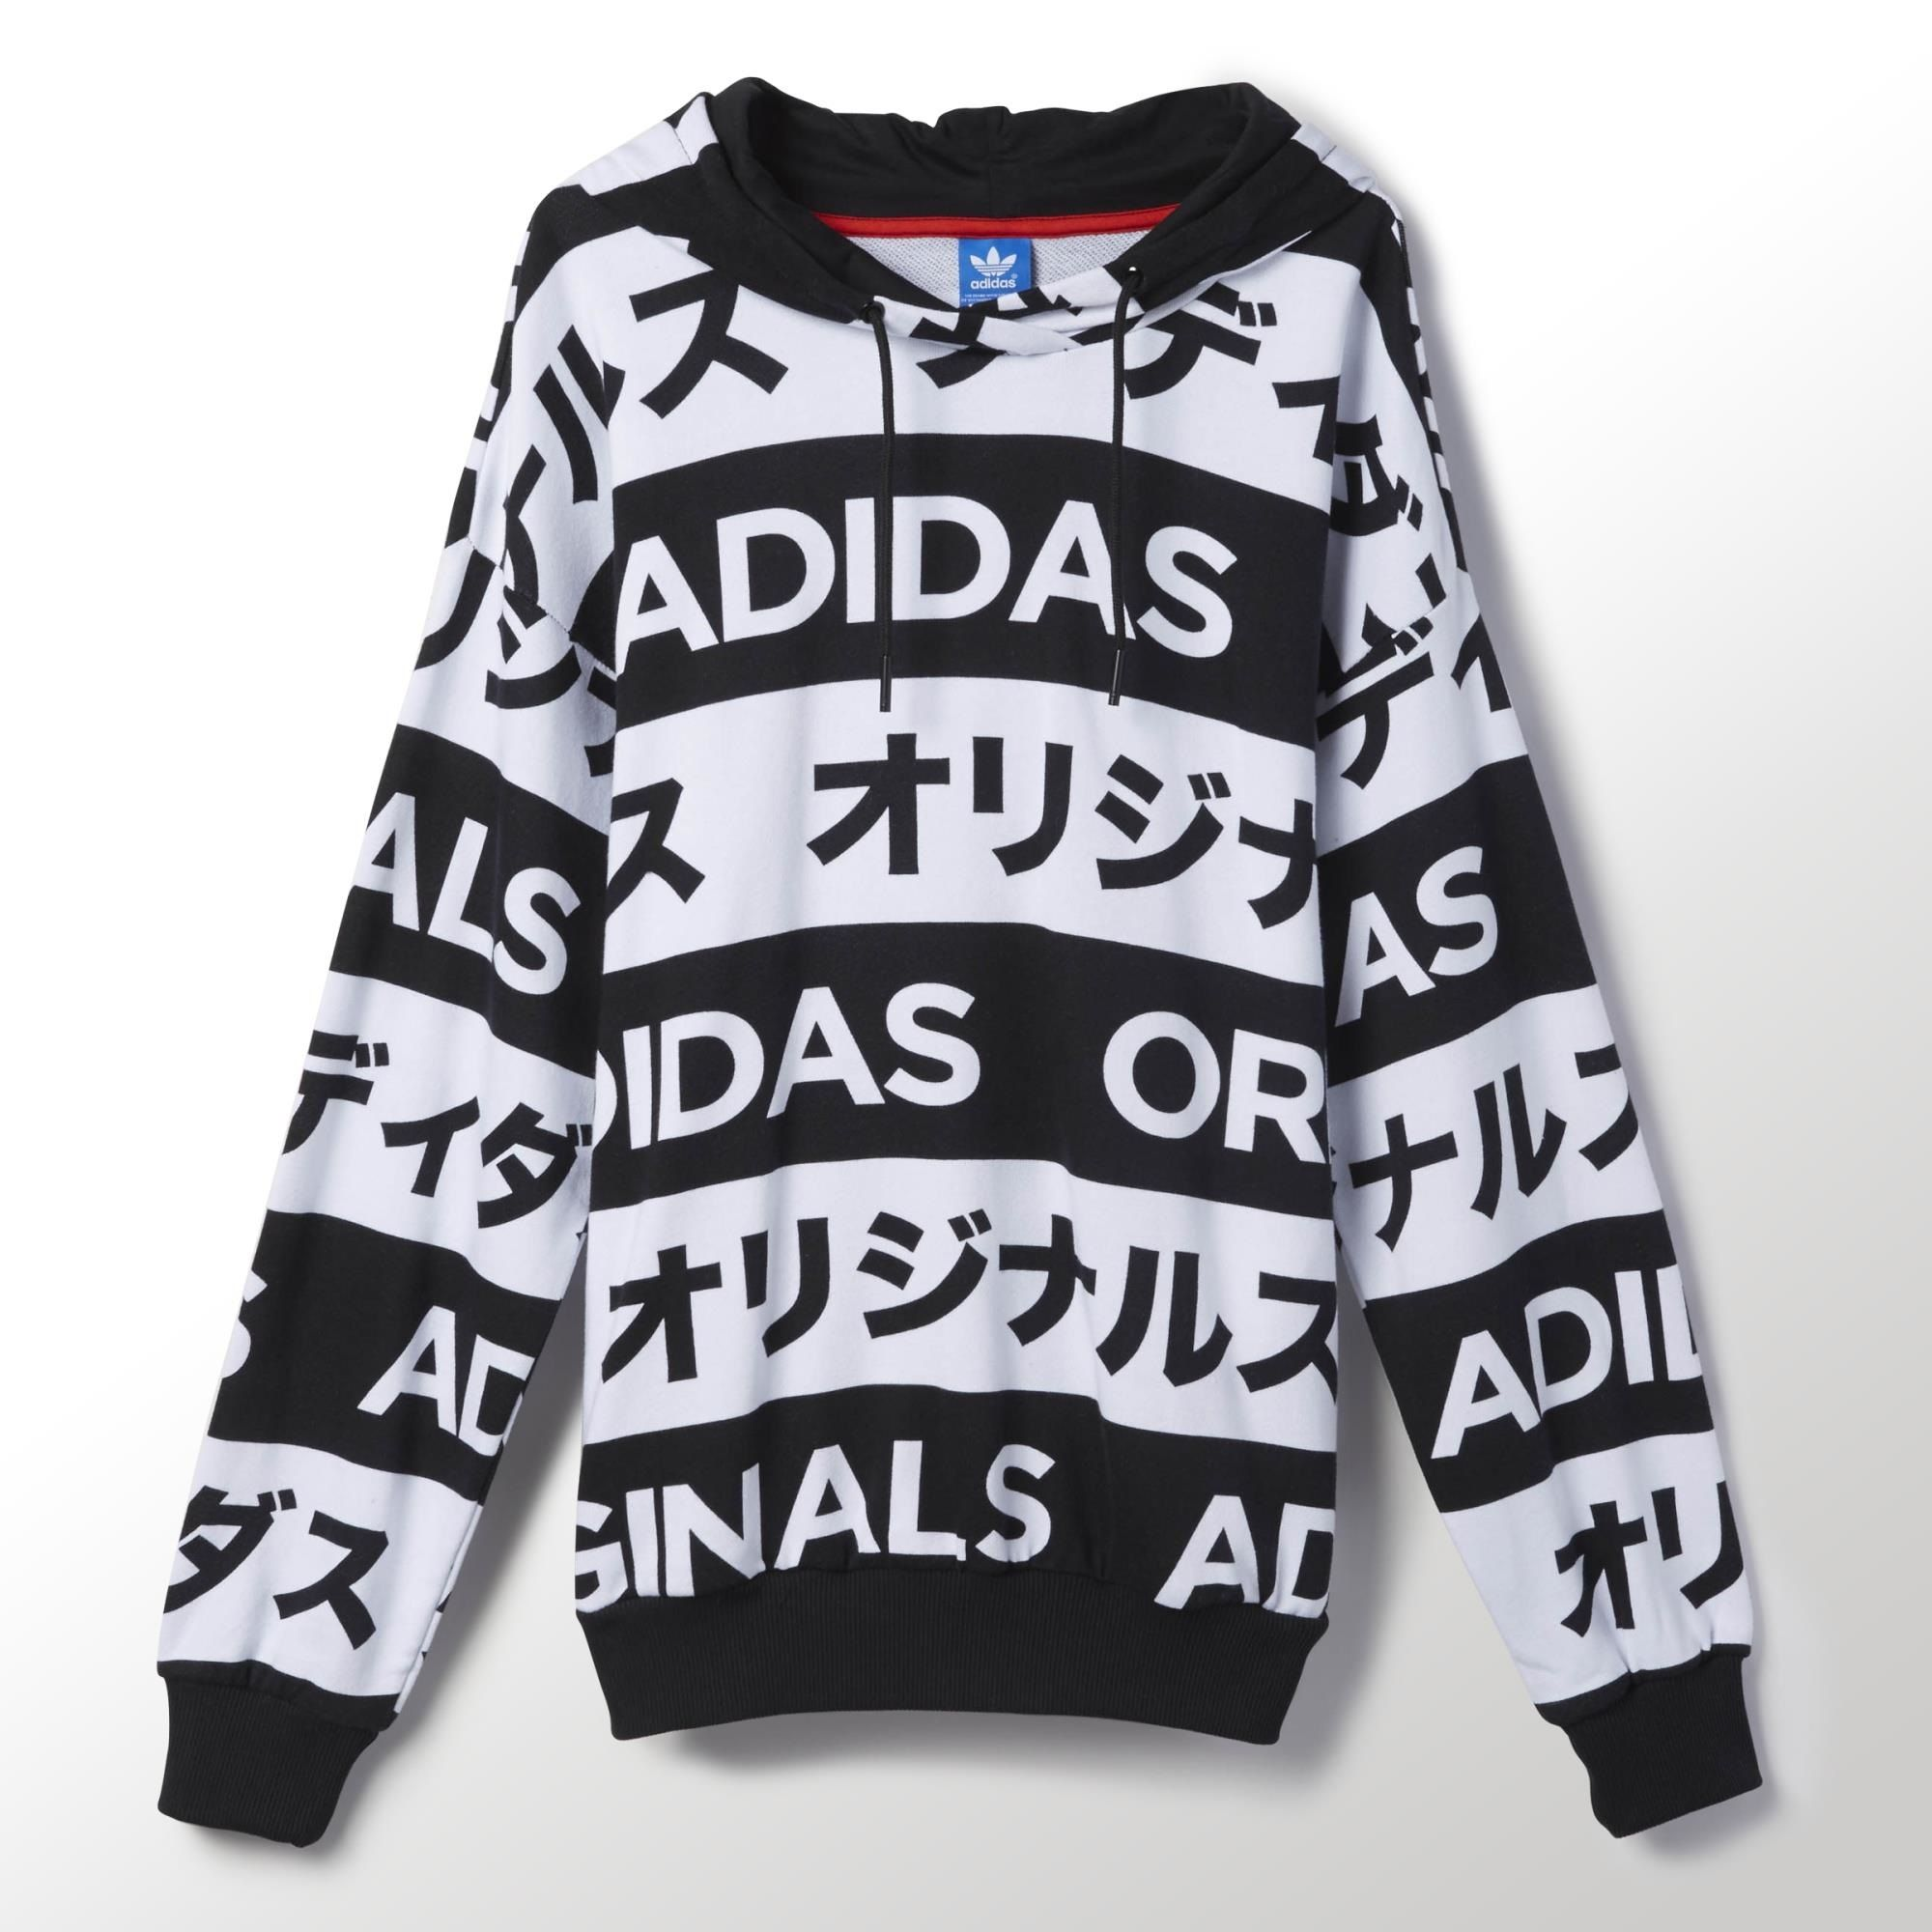 5aac937482e adidas Originals makes a statement in any language. Black and white bands  of Japanese katakana characters give bold graphic style to this women s  hoodie.